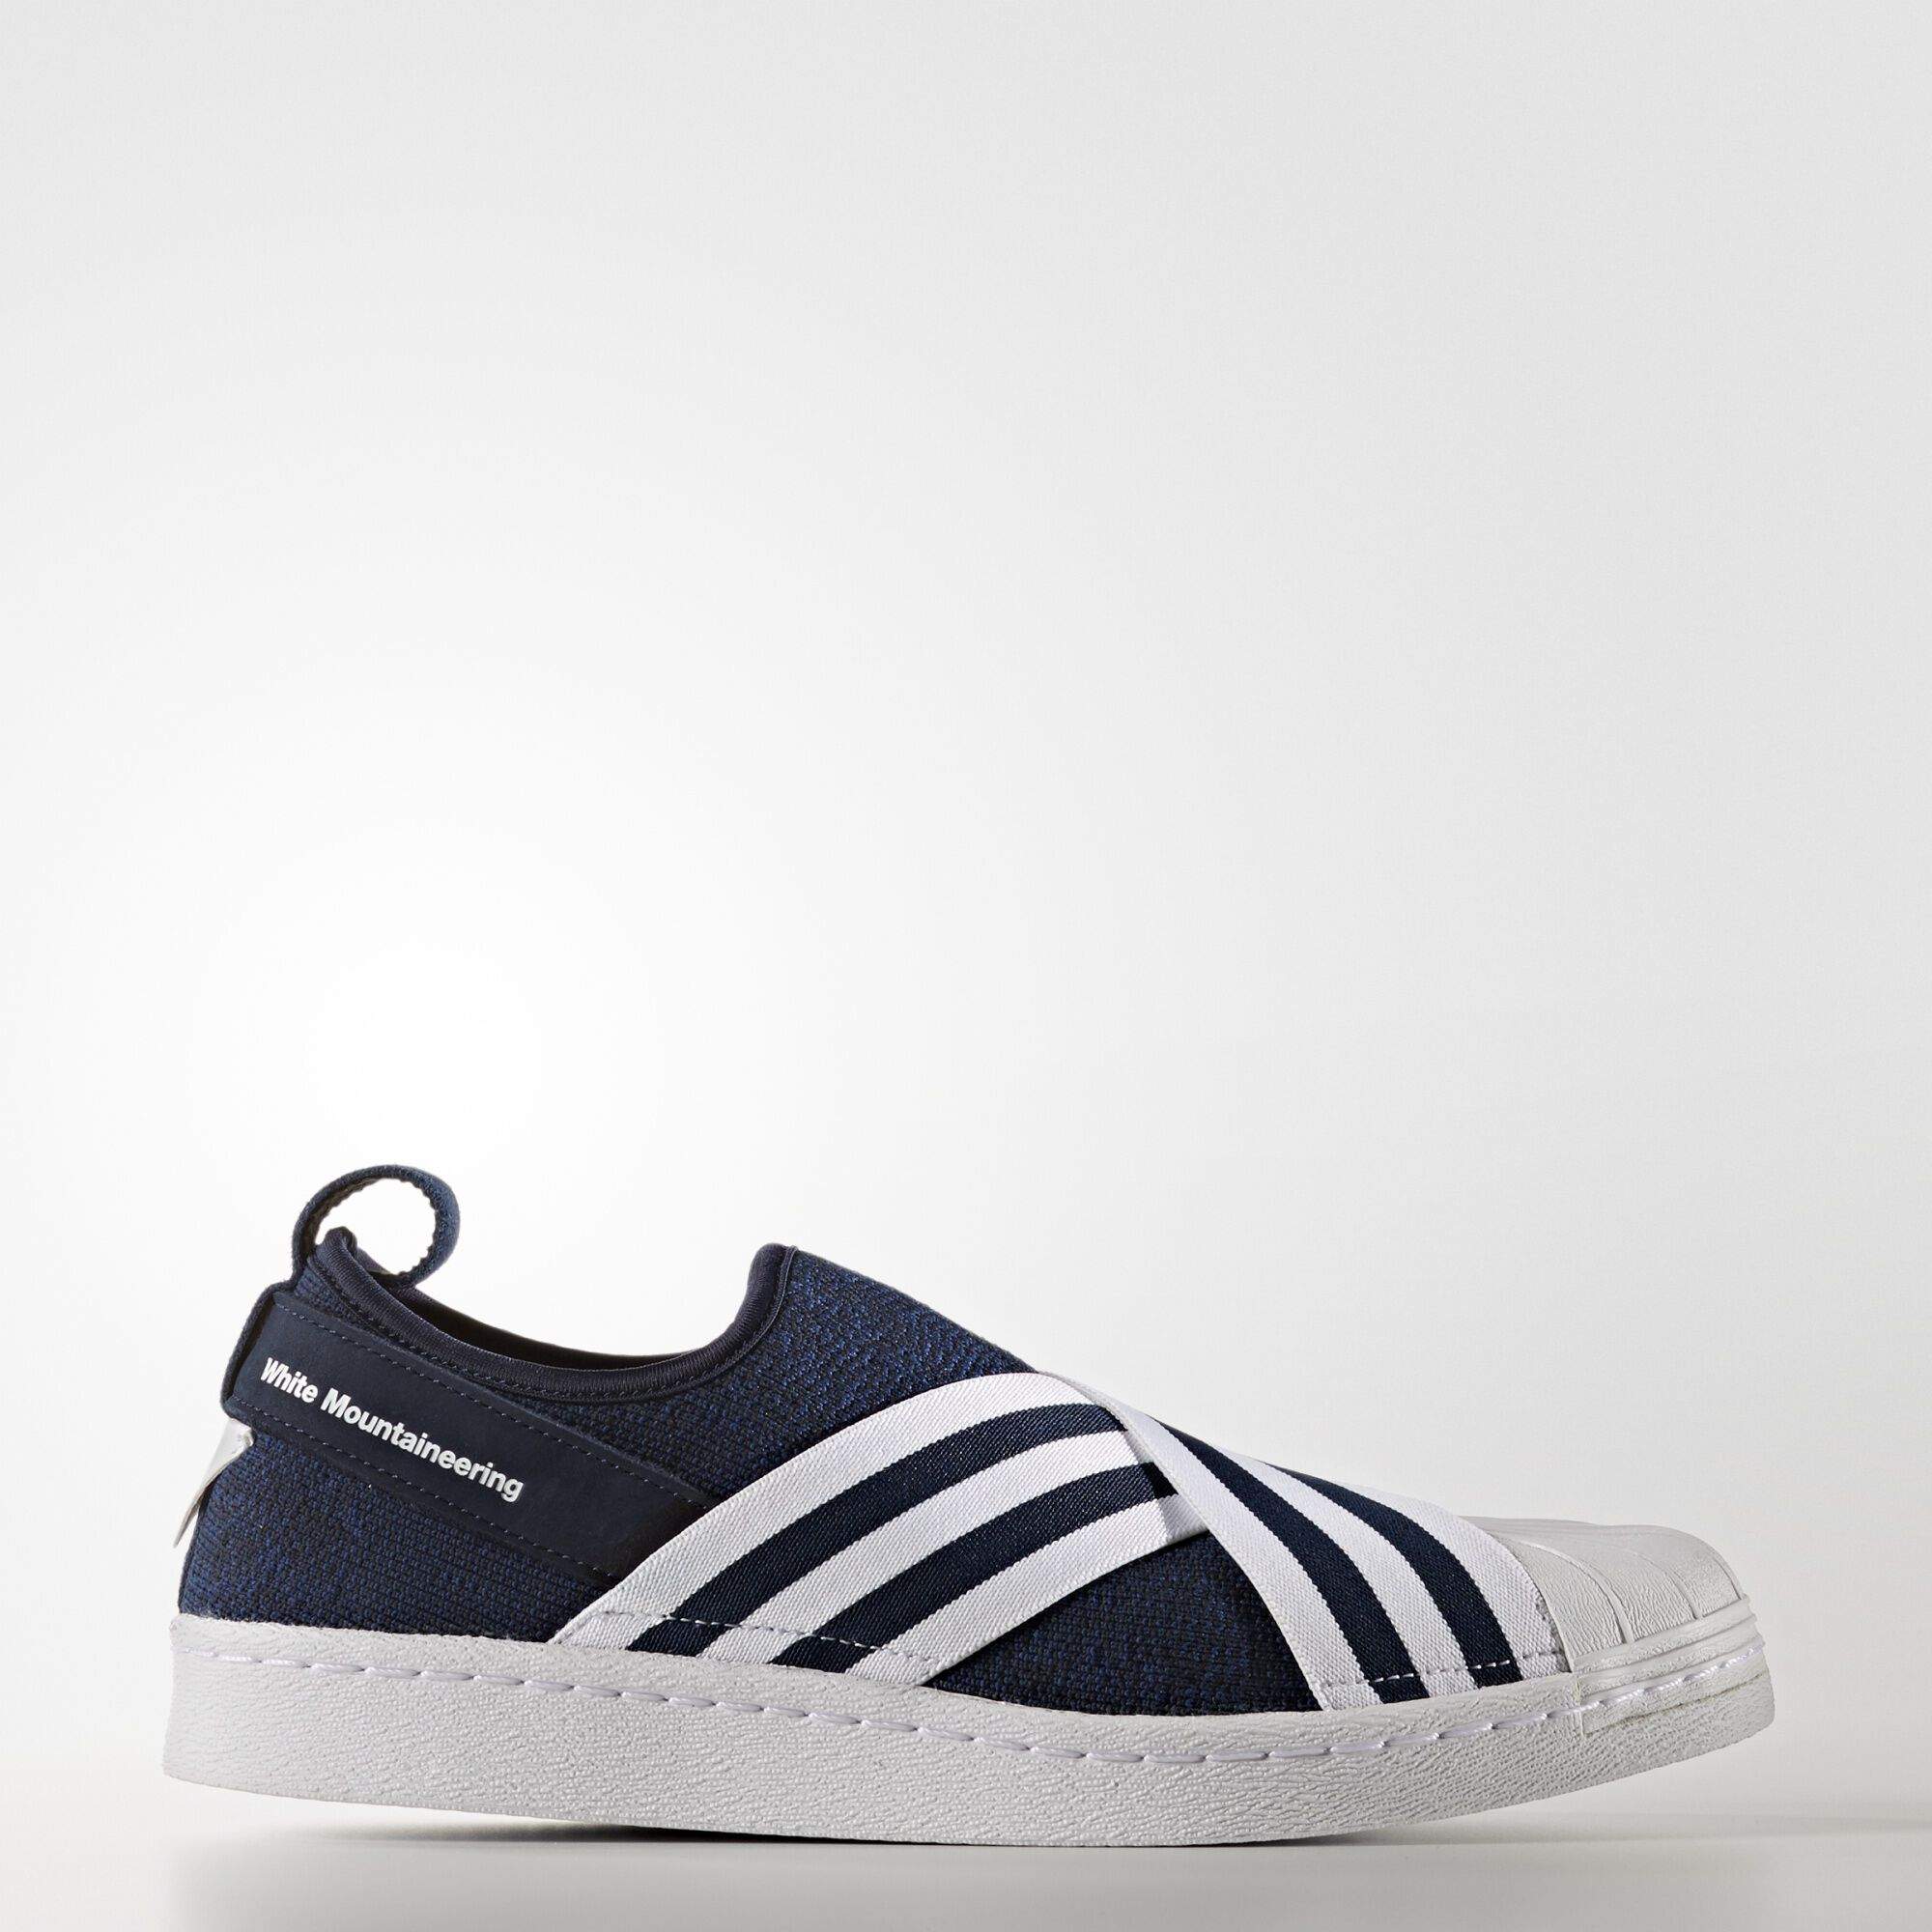 Sale Superstar 2 White Black Online, Best Tubular on Sale Kyle 's - BEVI